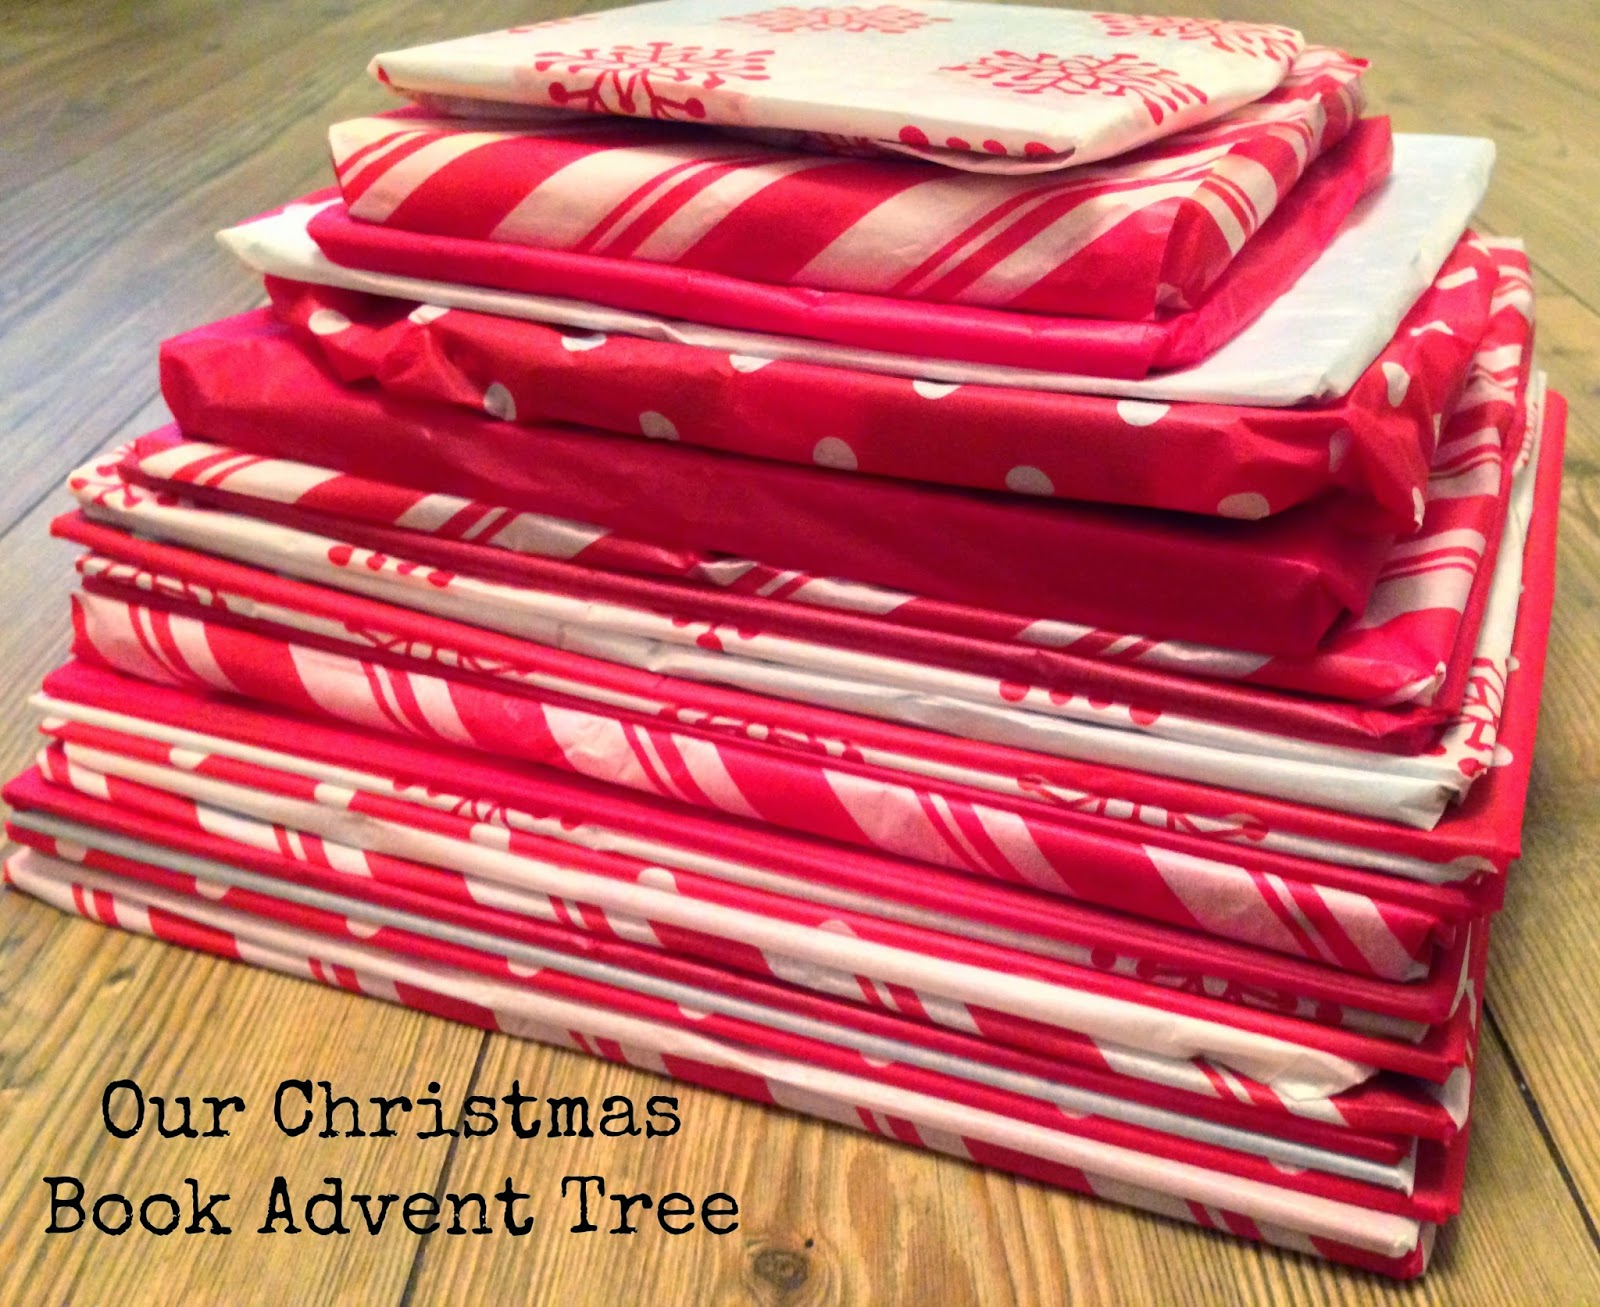 Our Christmas Book Advent tree | Ideas for the Best Children's Books to Buy this Christmas